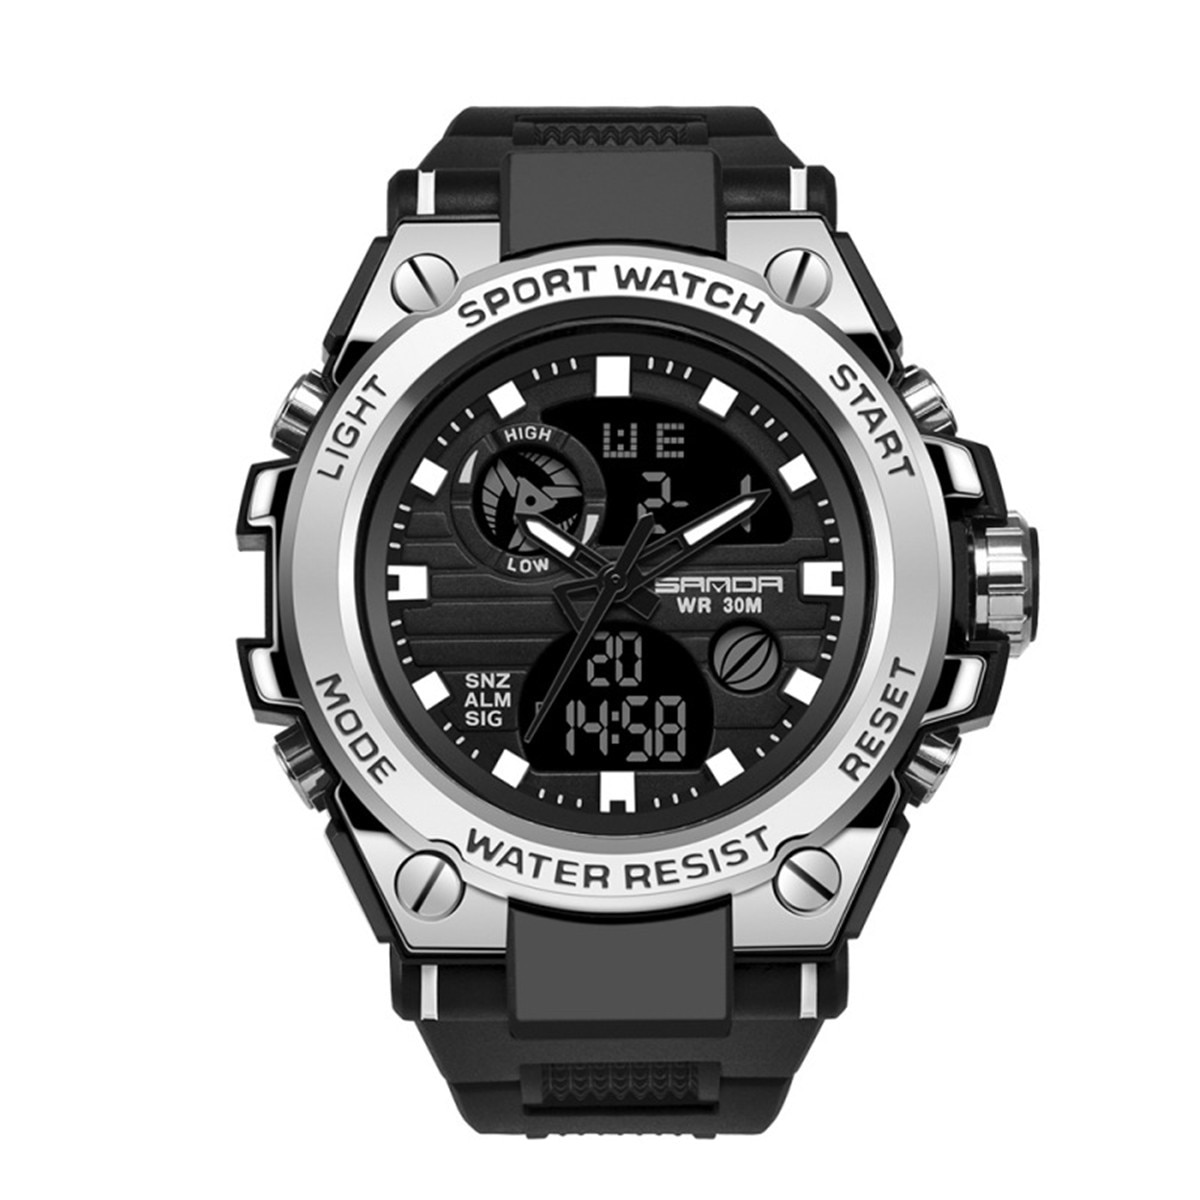 Фото - Men's Digital Watch Wristwatch Luxury Electronics Sport Military Offers With Free Shipping Chronograph Waterproof Multi-Function 2021 new sport travel lover watches carnival red digital clock gift for men waterproof electronics offers with free shipping